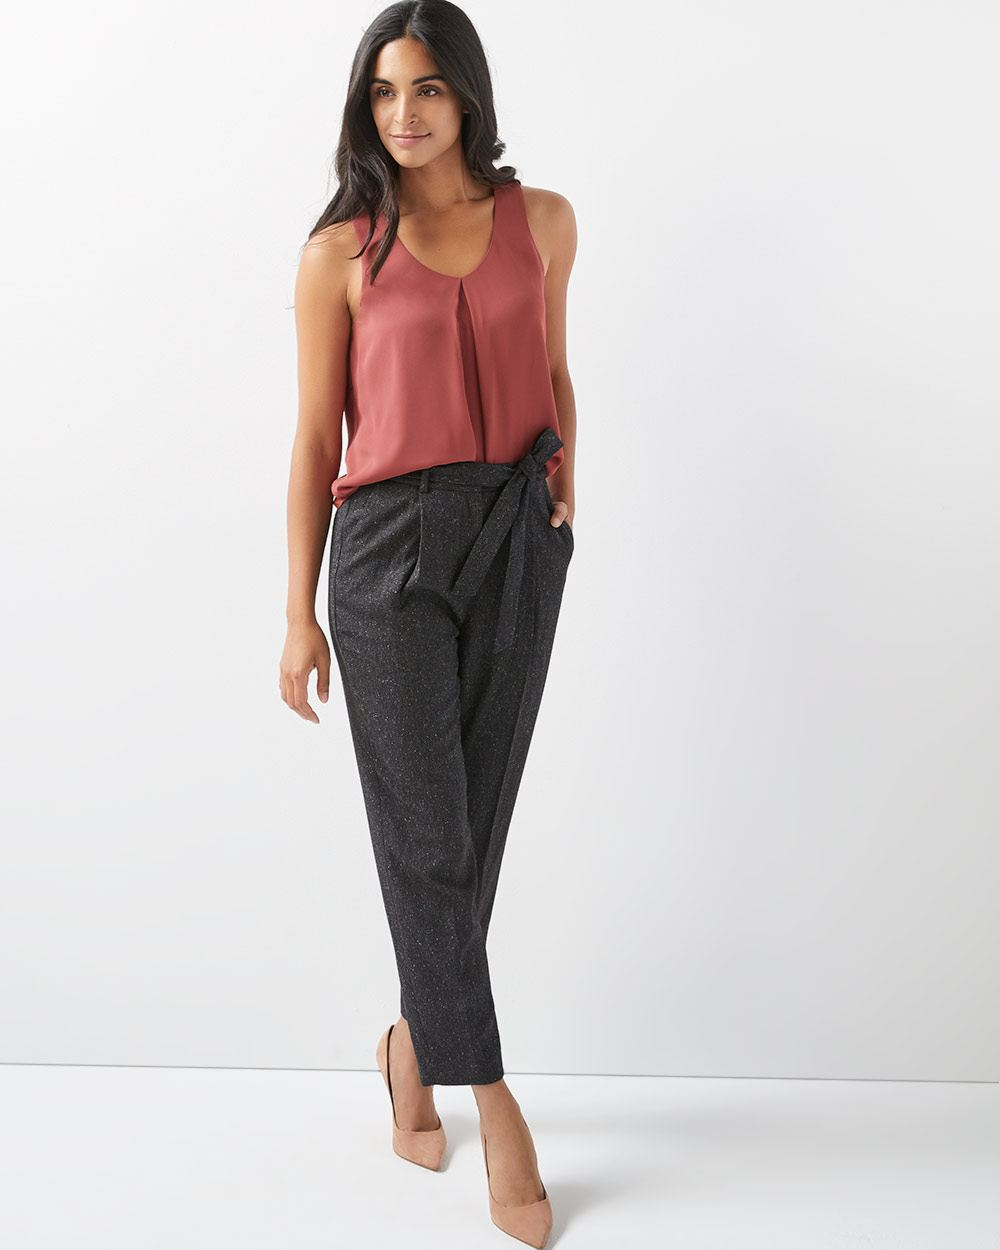 High-waist stretch nepped paper bag pant